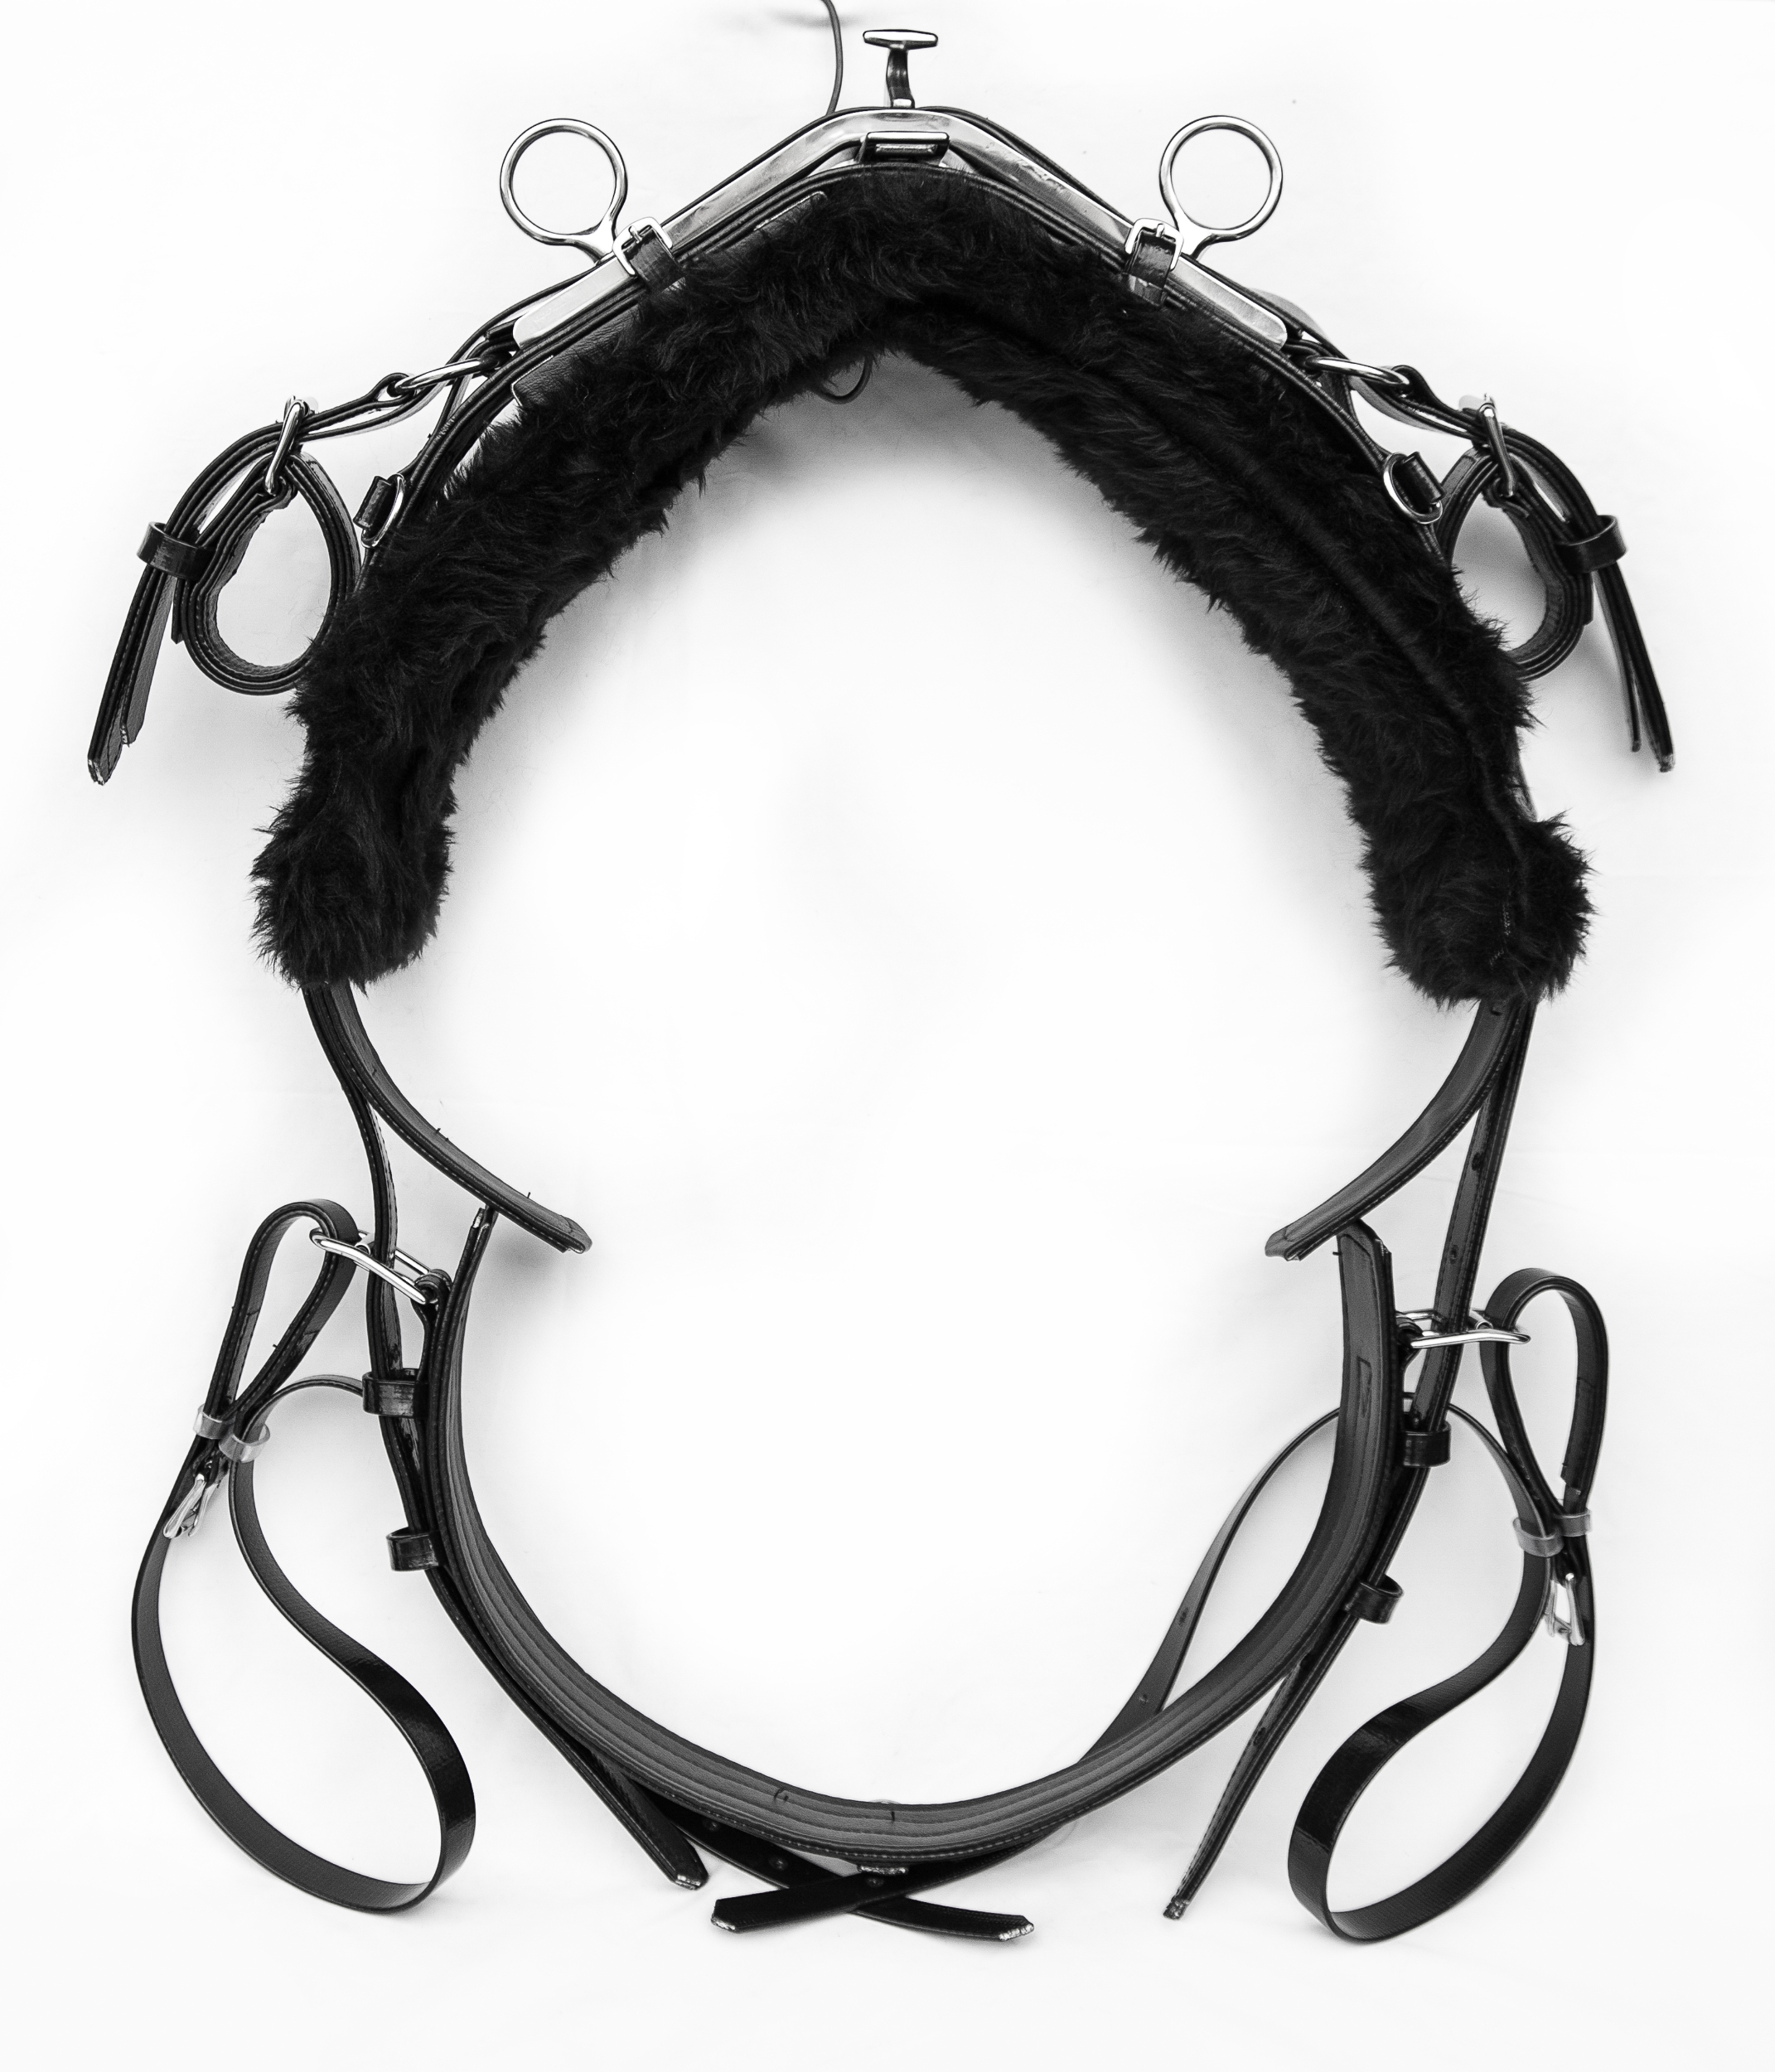 Harness-TieDown-Black-8.jpg